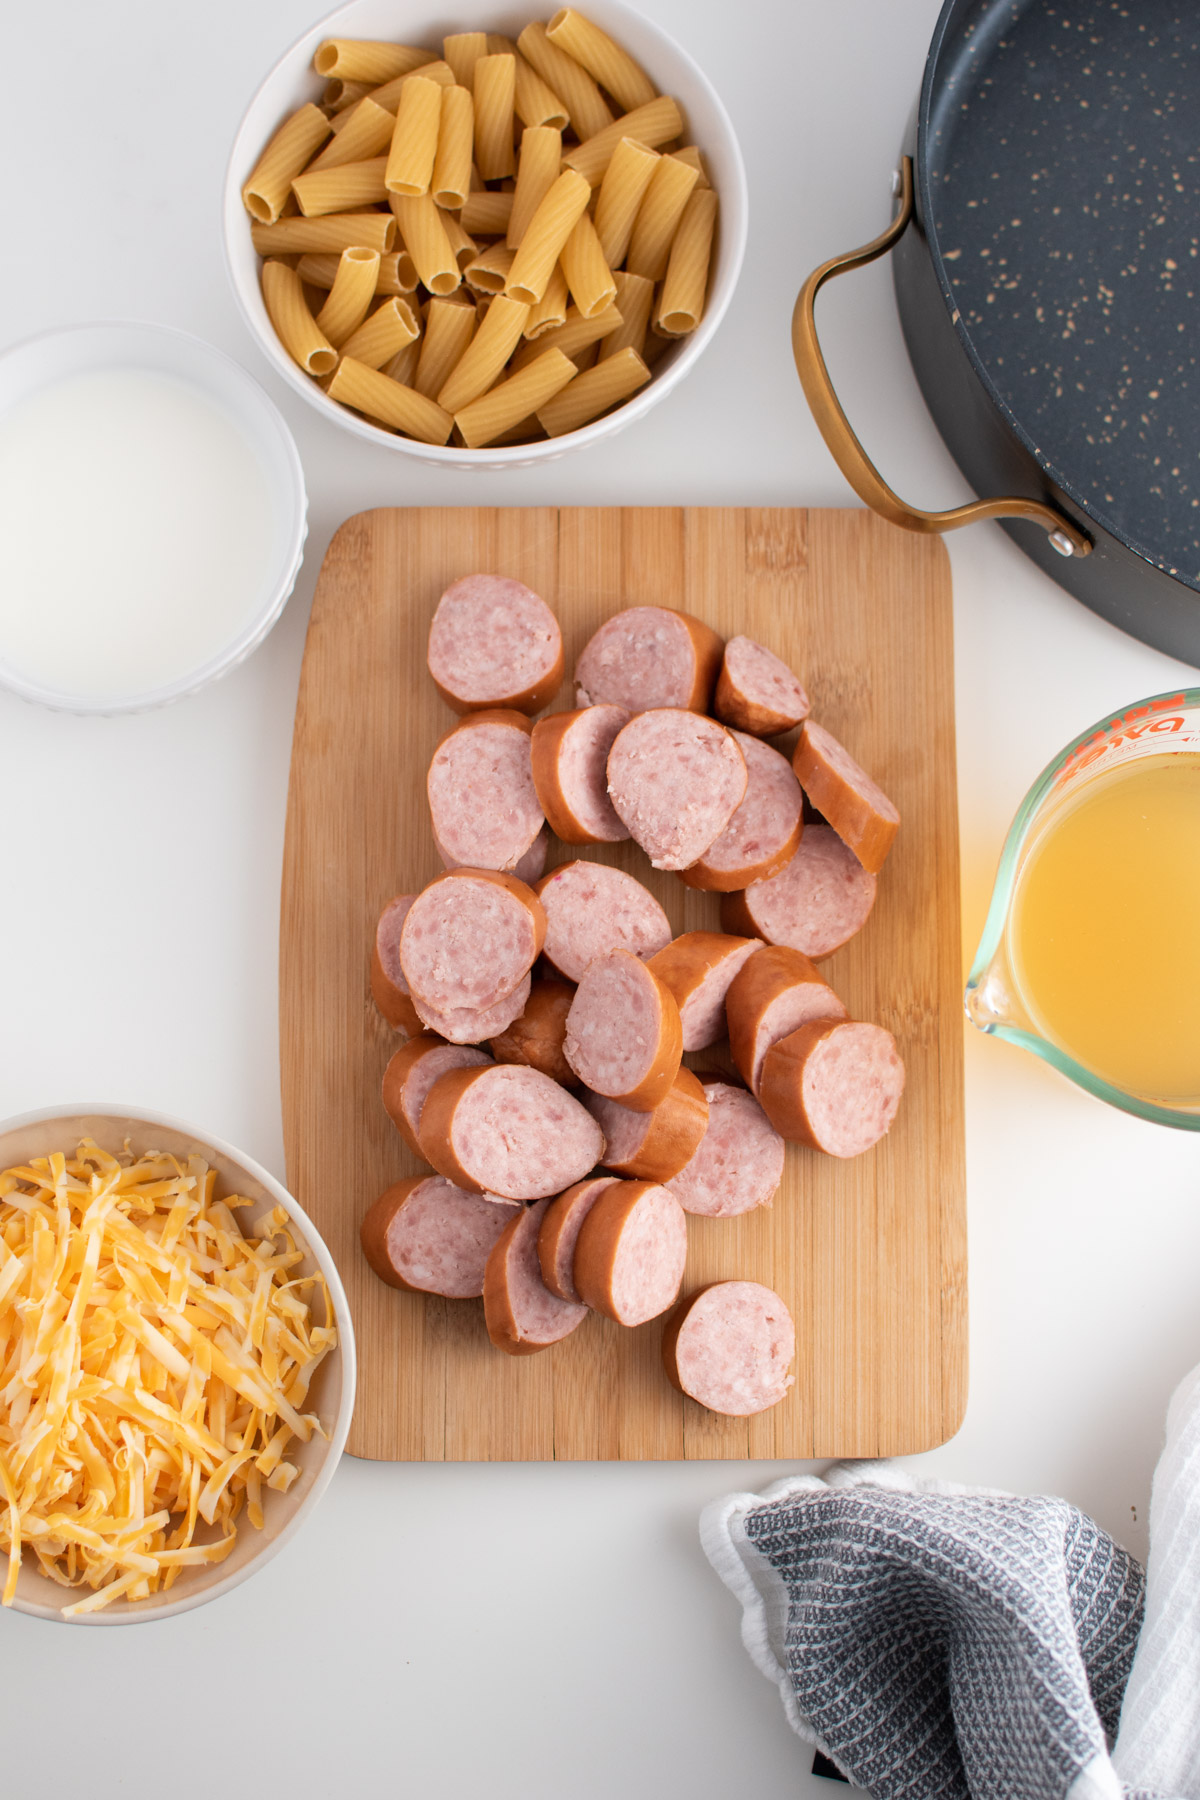 Kielbasa pasta ingredients including shredded cheese, milk, broth and sausage on white table.